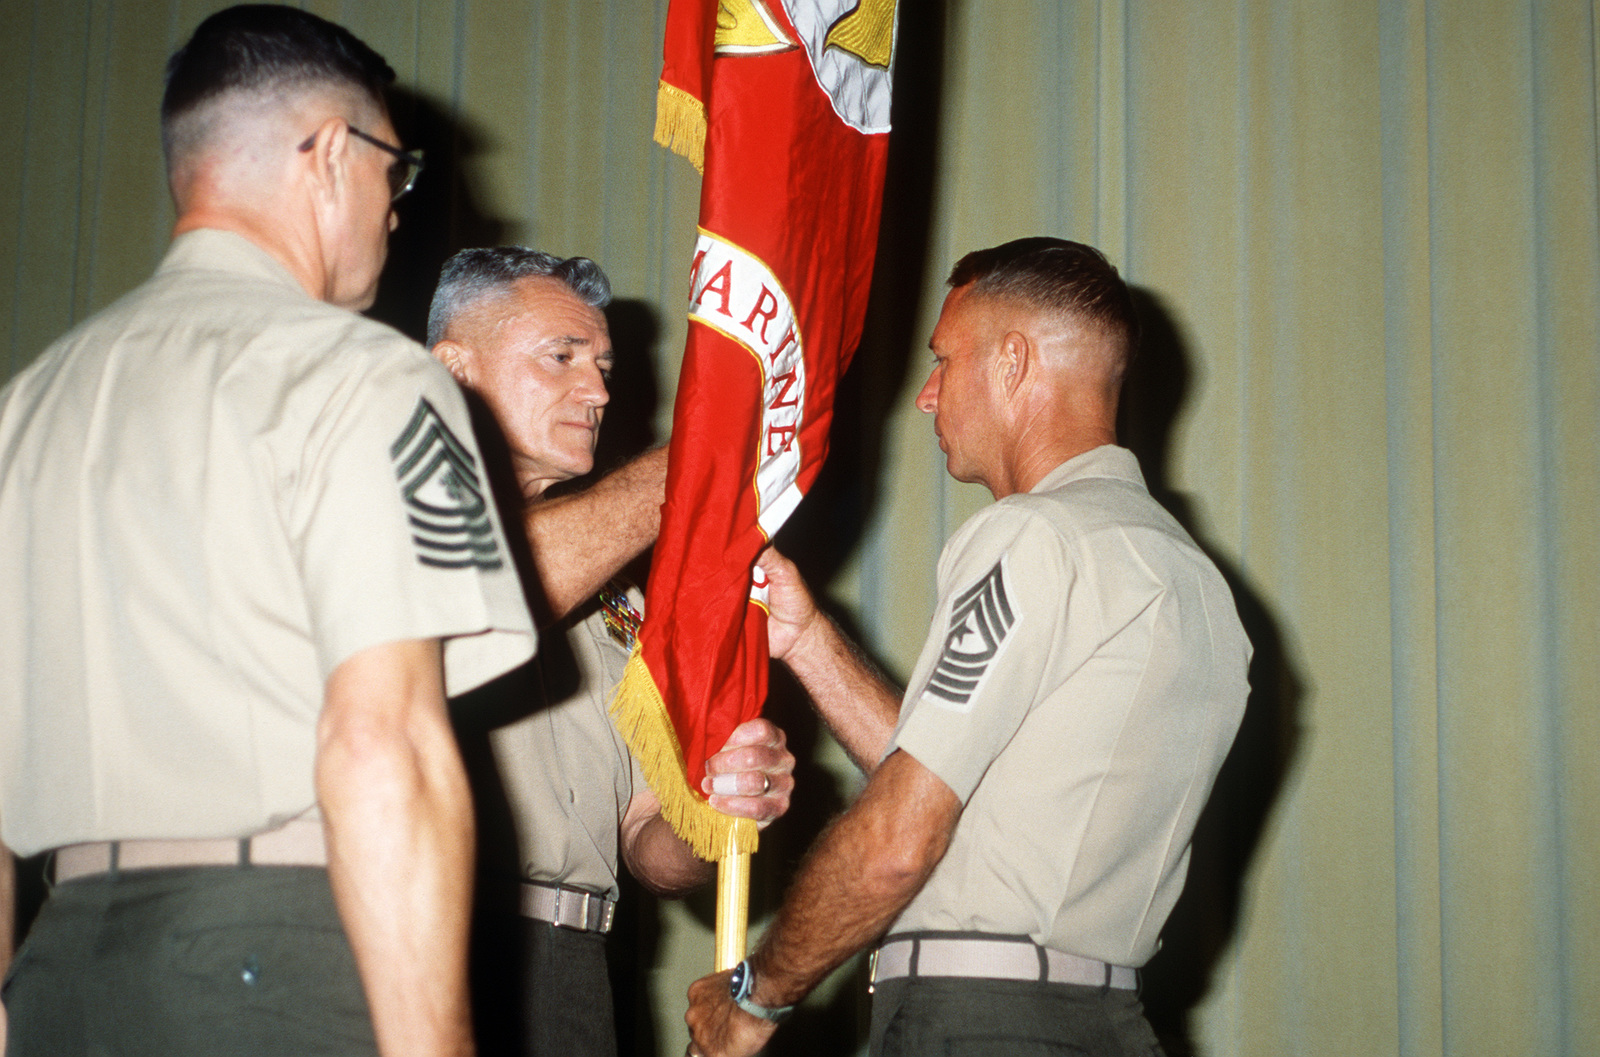 Sergeant Major (SGM) David W. Sommers, incoming sergeant major of the Command and STAFF College, receives the command flag from Colonel (COL) Wesley Fox while an unidentified sergeant major looks on during the change of command ceremony